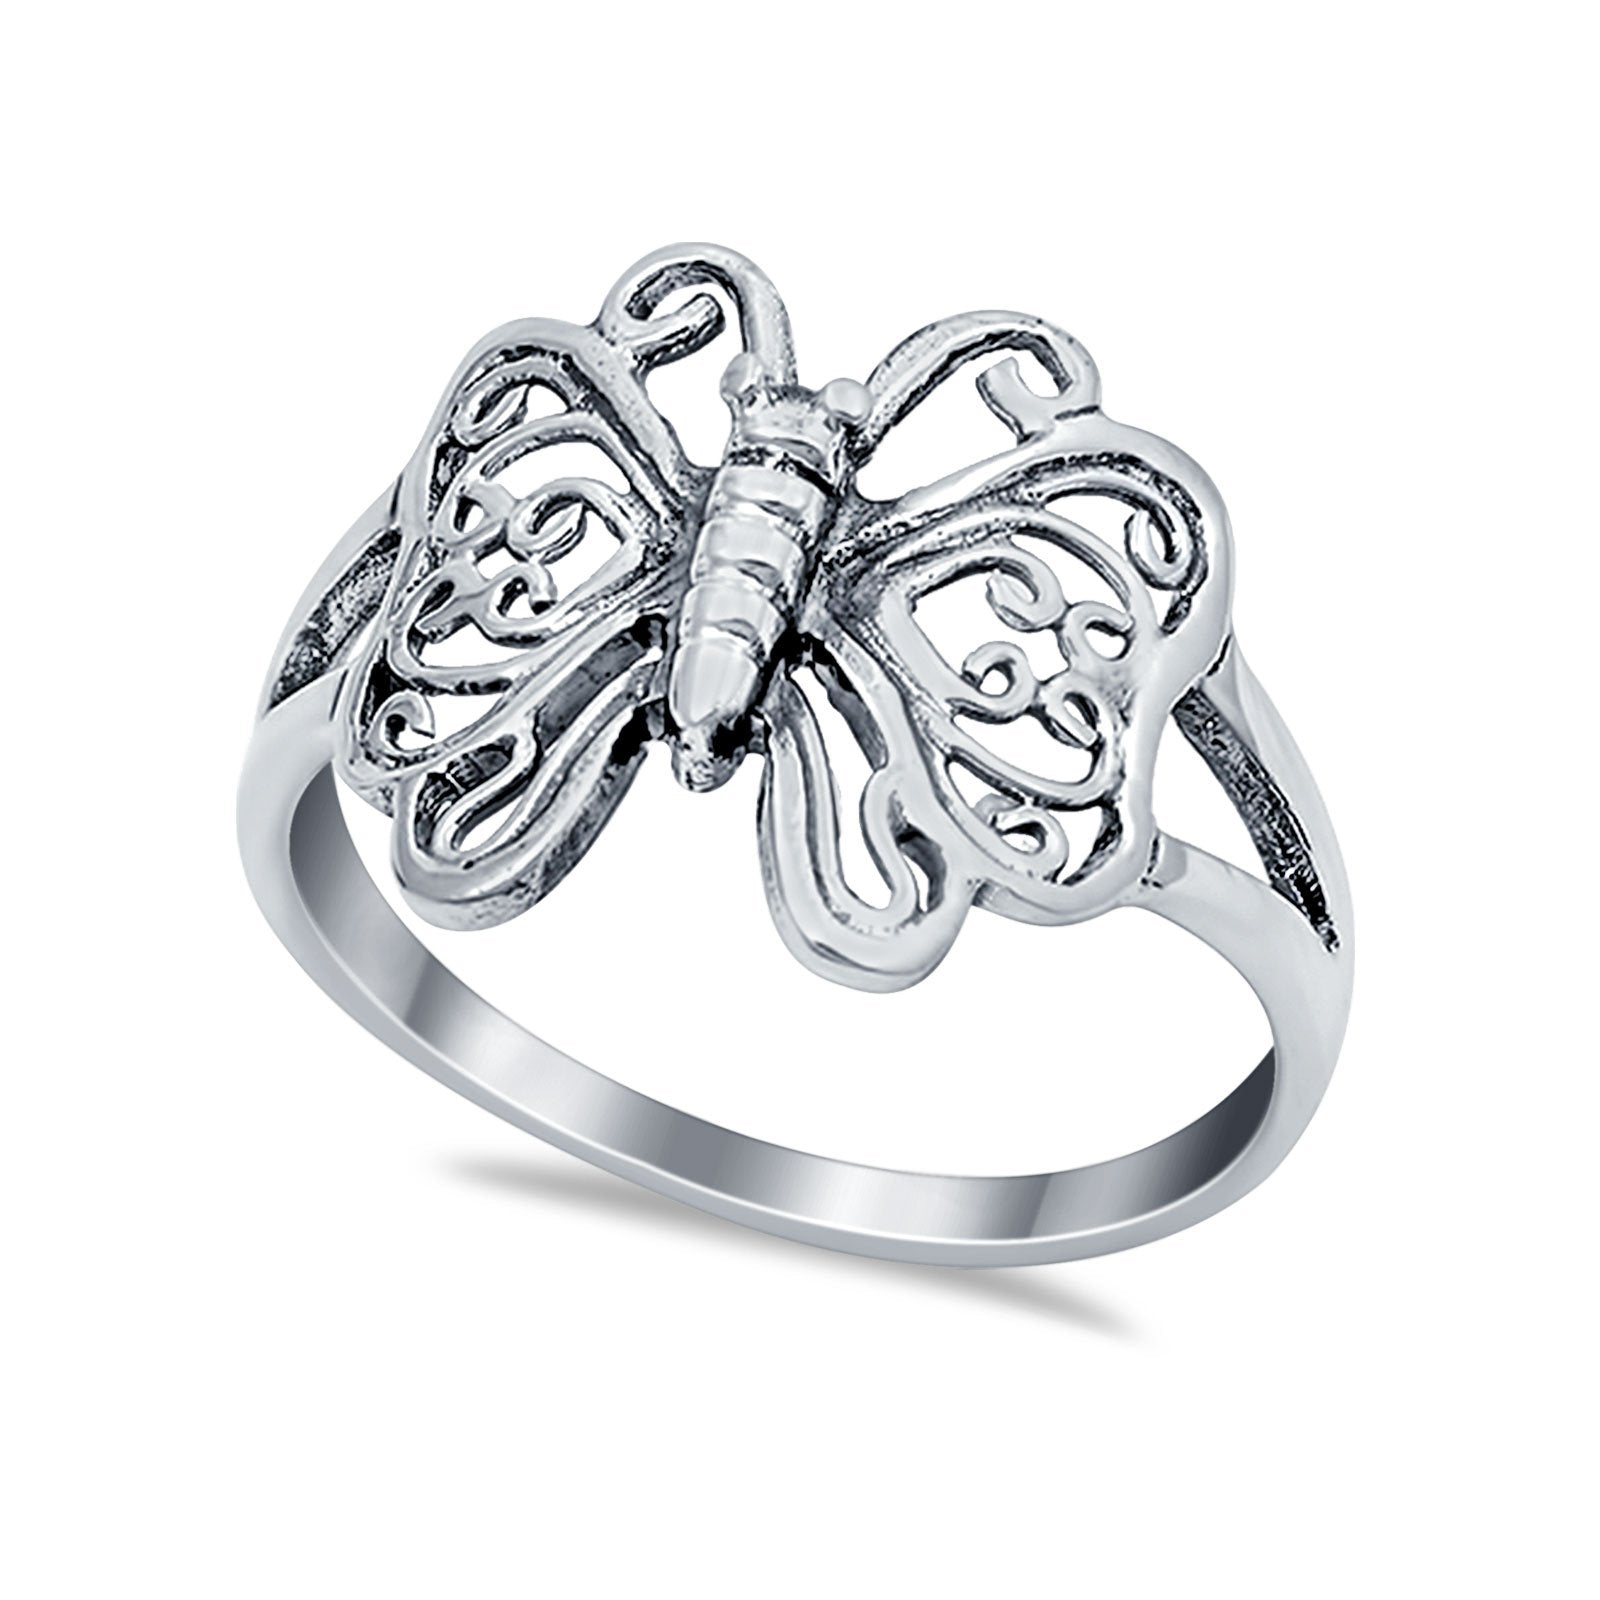 Sterling Silver Heart Filigree Butterfly Ring Band Round 925 Sterling Silver